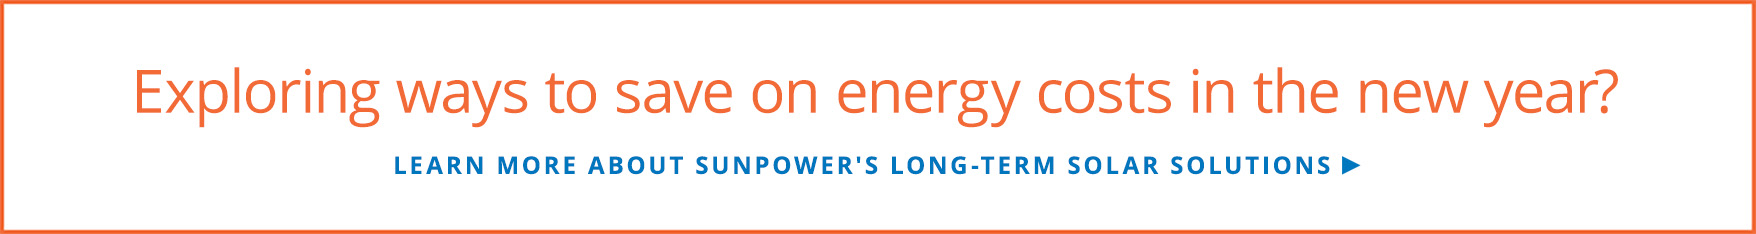 Learn more about SunPower's long-term solar solutions